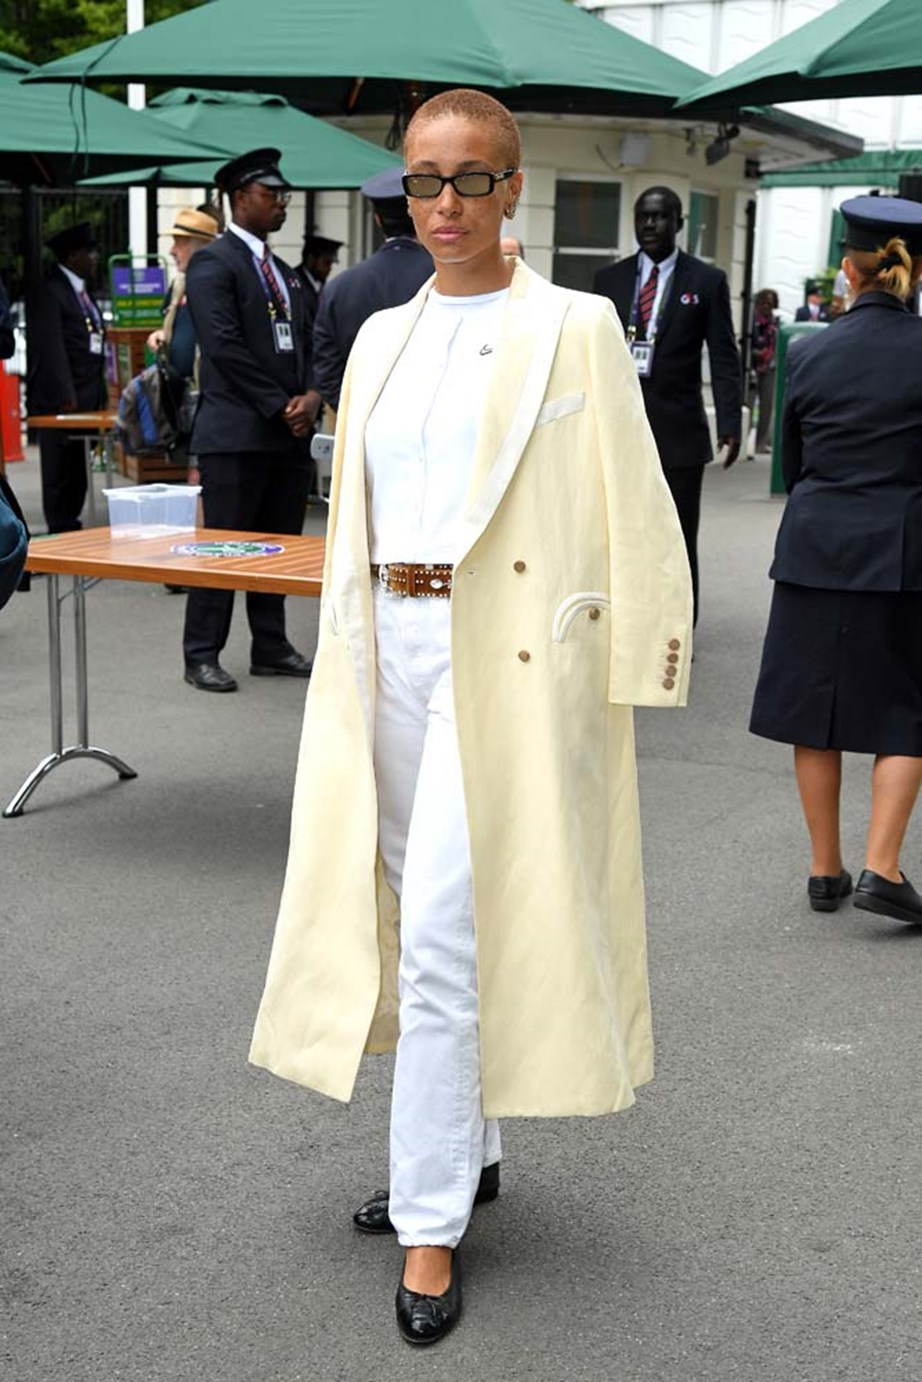 """***Adwoa Aboah***<br><br> """"Adwoa looks beautiful in her Blaze Milano coat. I love anyone who can pull off this shade of pale yellow. And the flat shoes are perfect for walking up all of those stairs."""" - Kate Sullivan, senior editorial coordinator. <br><Br> """"Tonal lemon dream chic. This Blaze Milano coat is heaven."""" - Caroline Tran, fashion editor."""